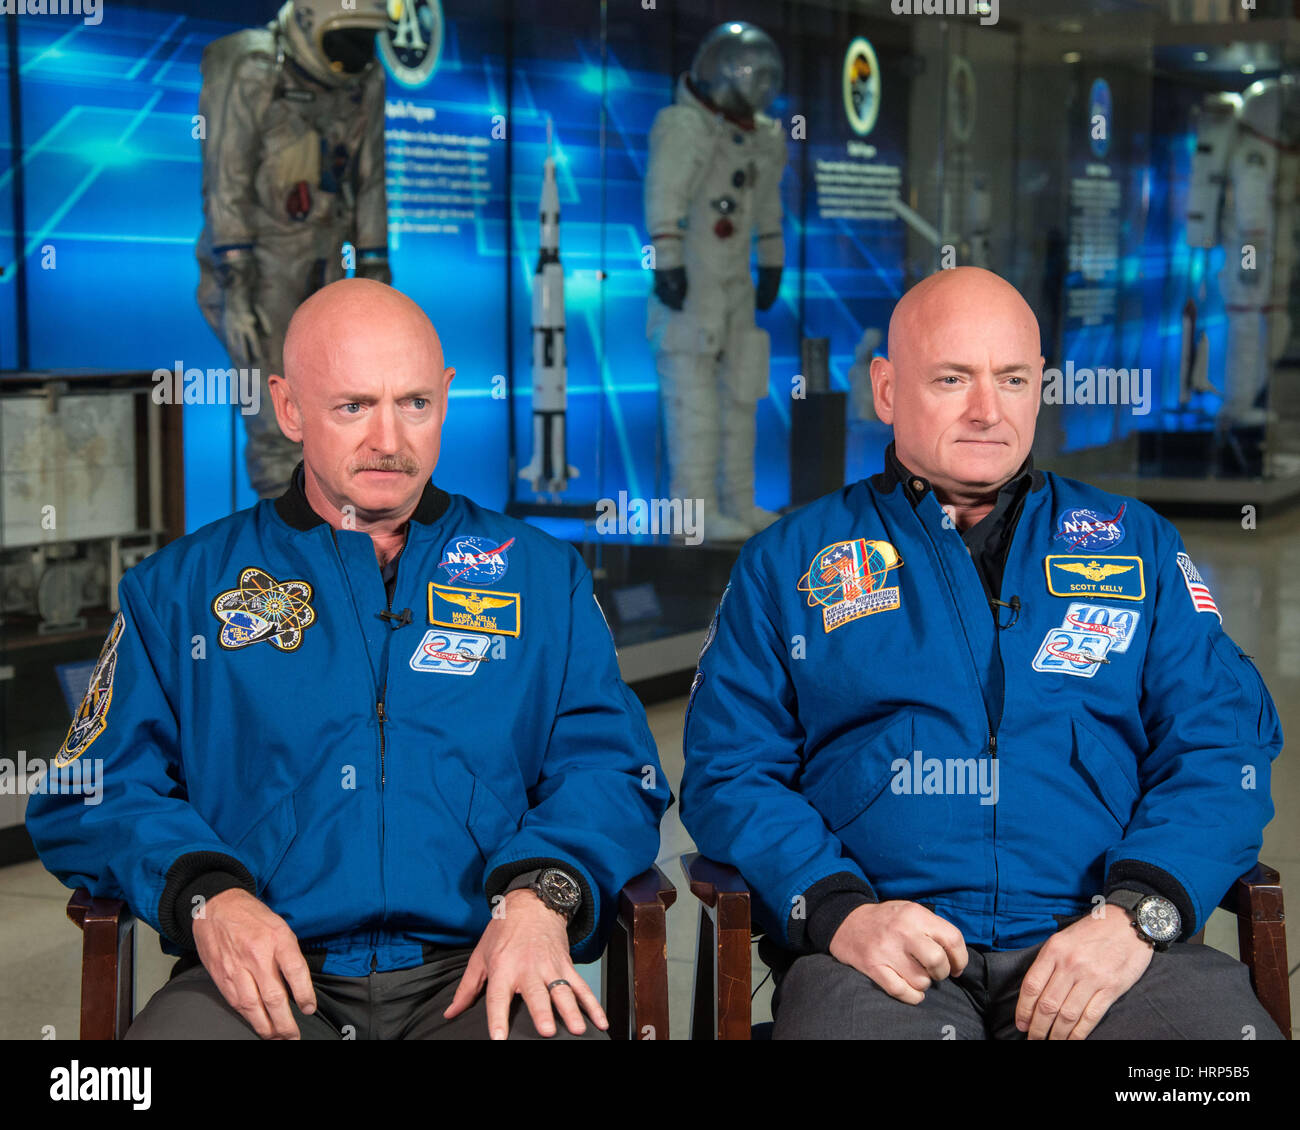 Houston Texas at the Johnson Space Center Expedition 45/46 Commander, Astronaut Scott Kelly along with his brother, - Stock Image